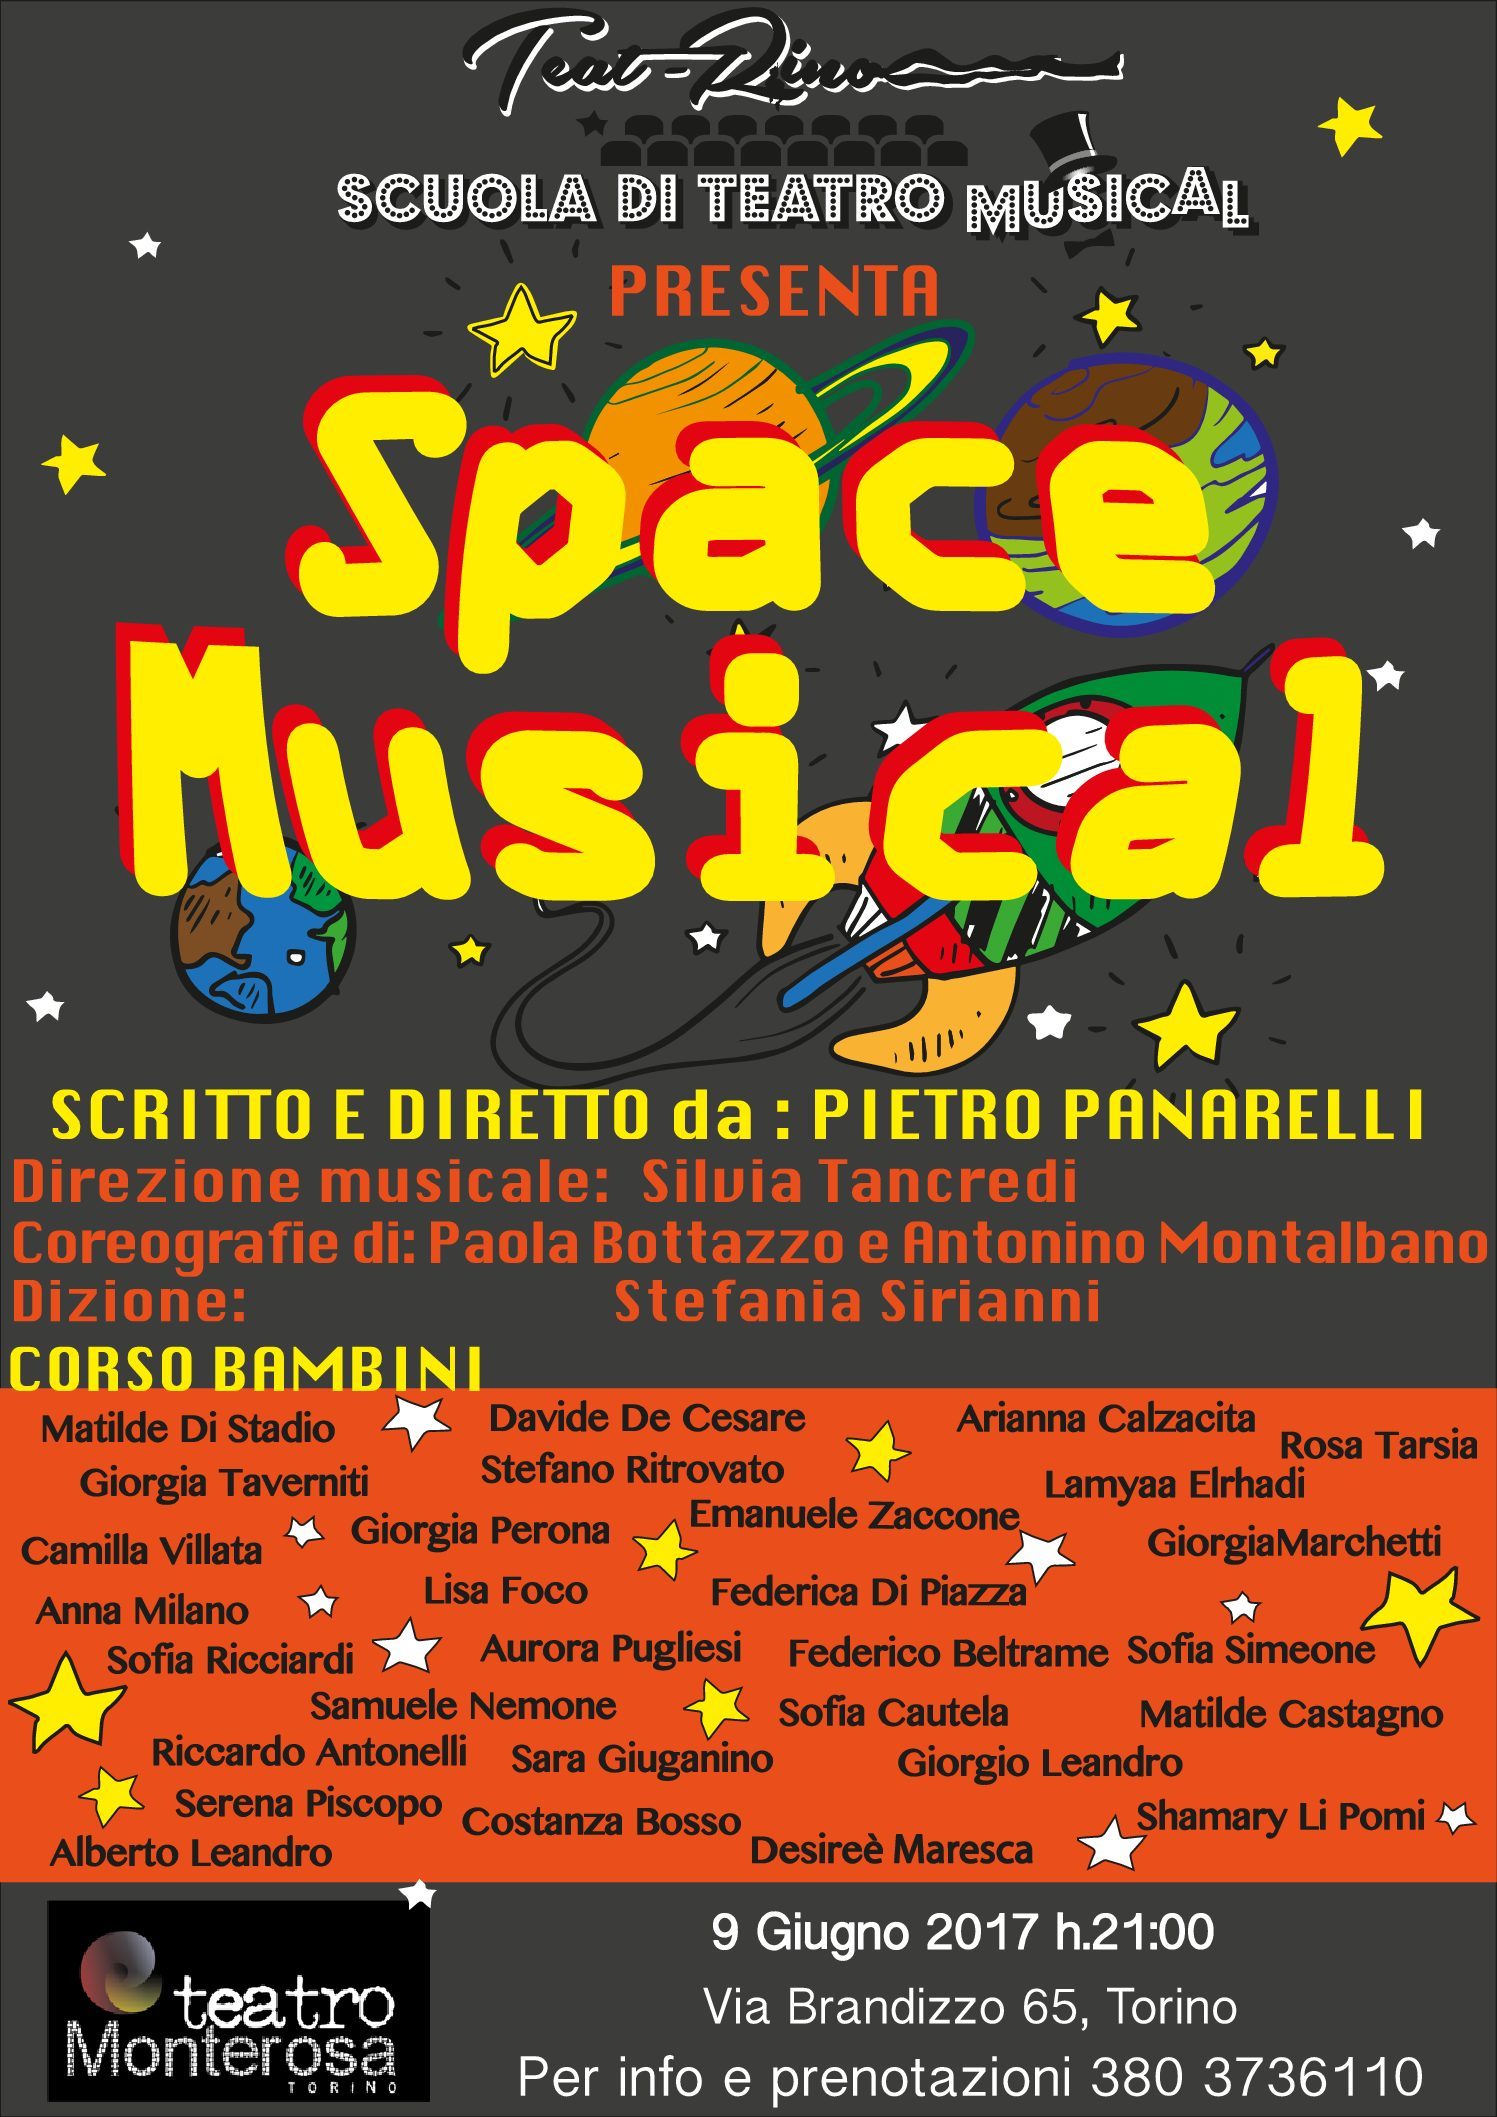 THE SPACE MUSICAL